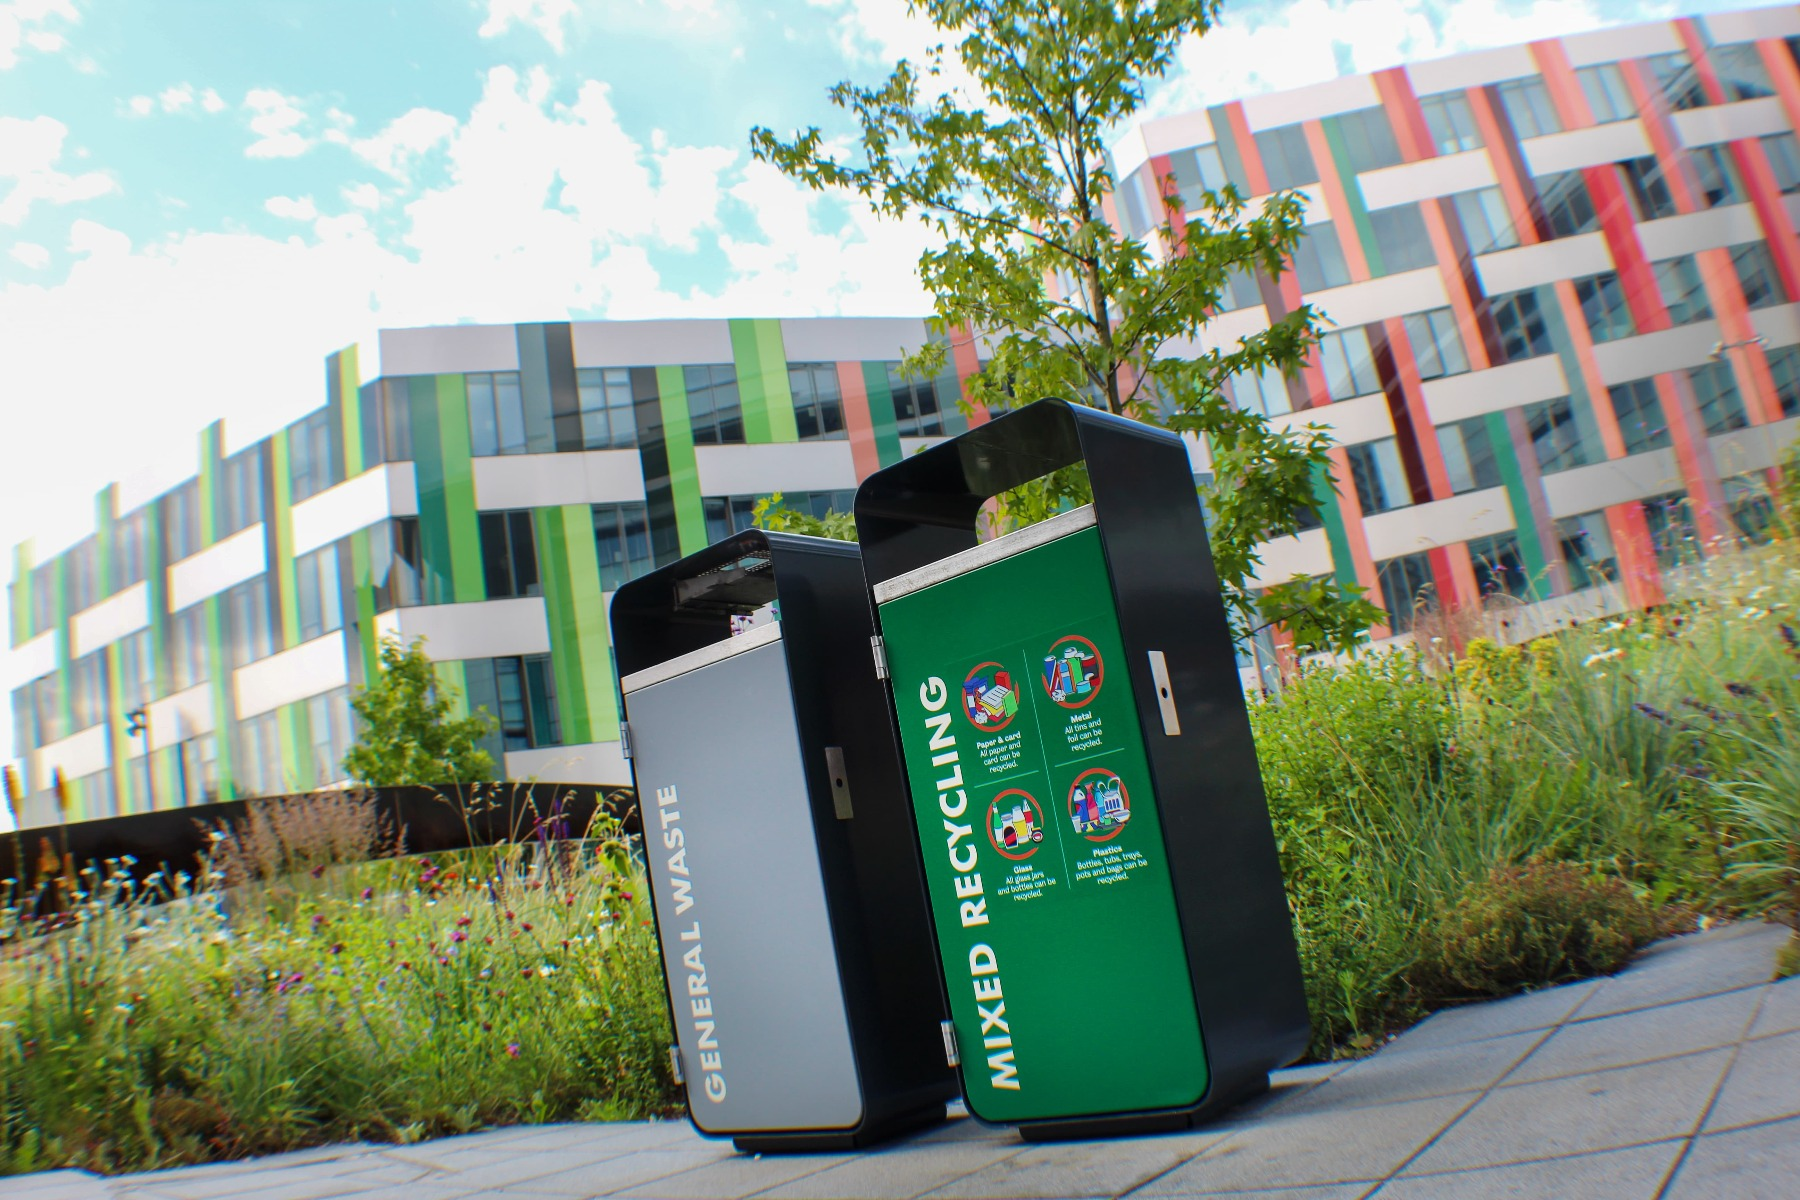 Modern Ascot Litter Bins for The University of Sheffield campus